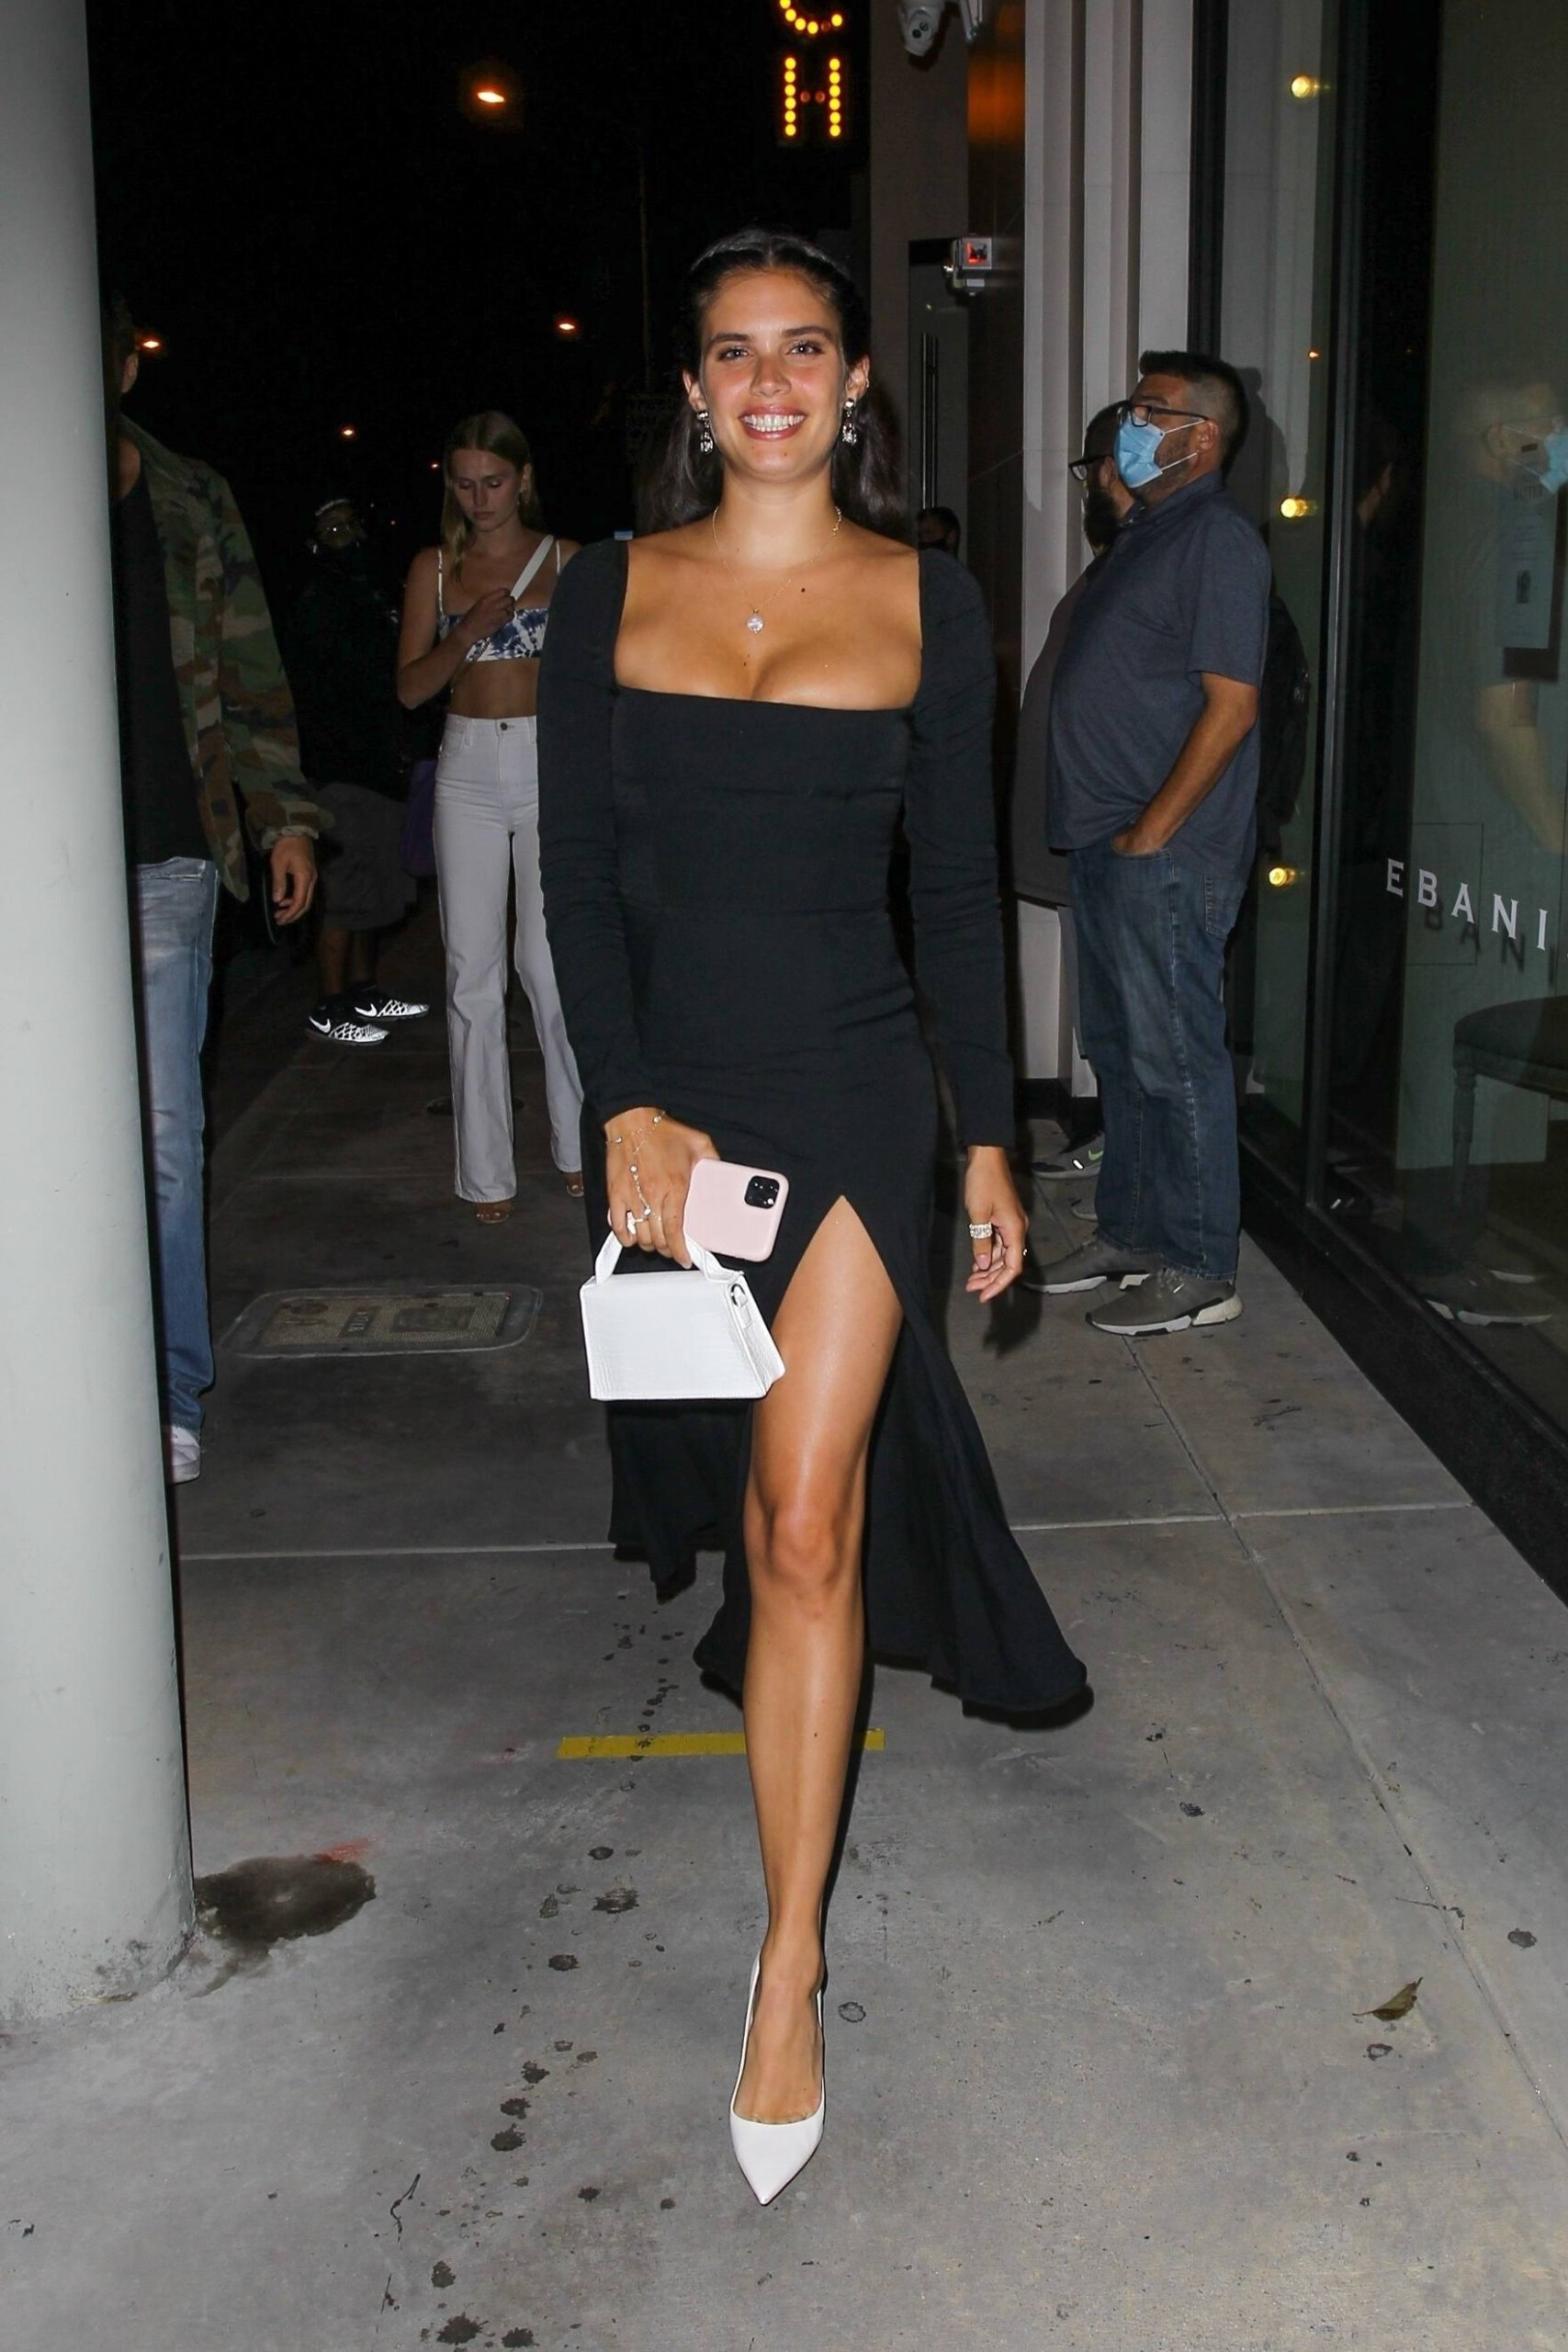 Sara Sampaio – Beautiful In Sexy Black Dress At Catch Restaurant In West Hollywood 0002